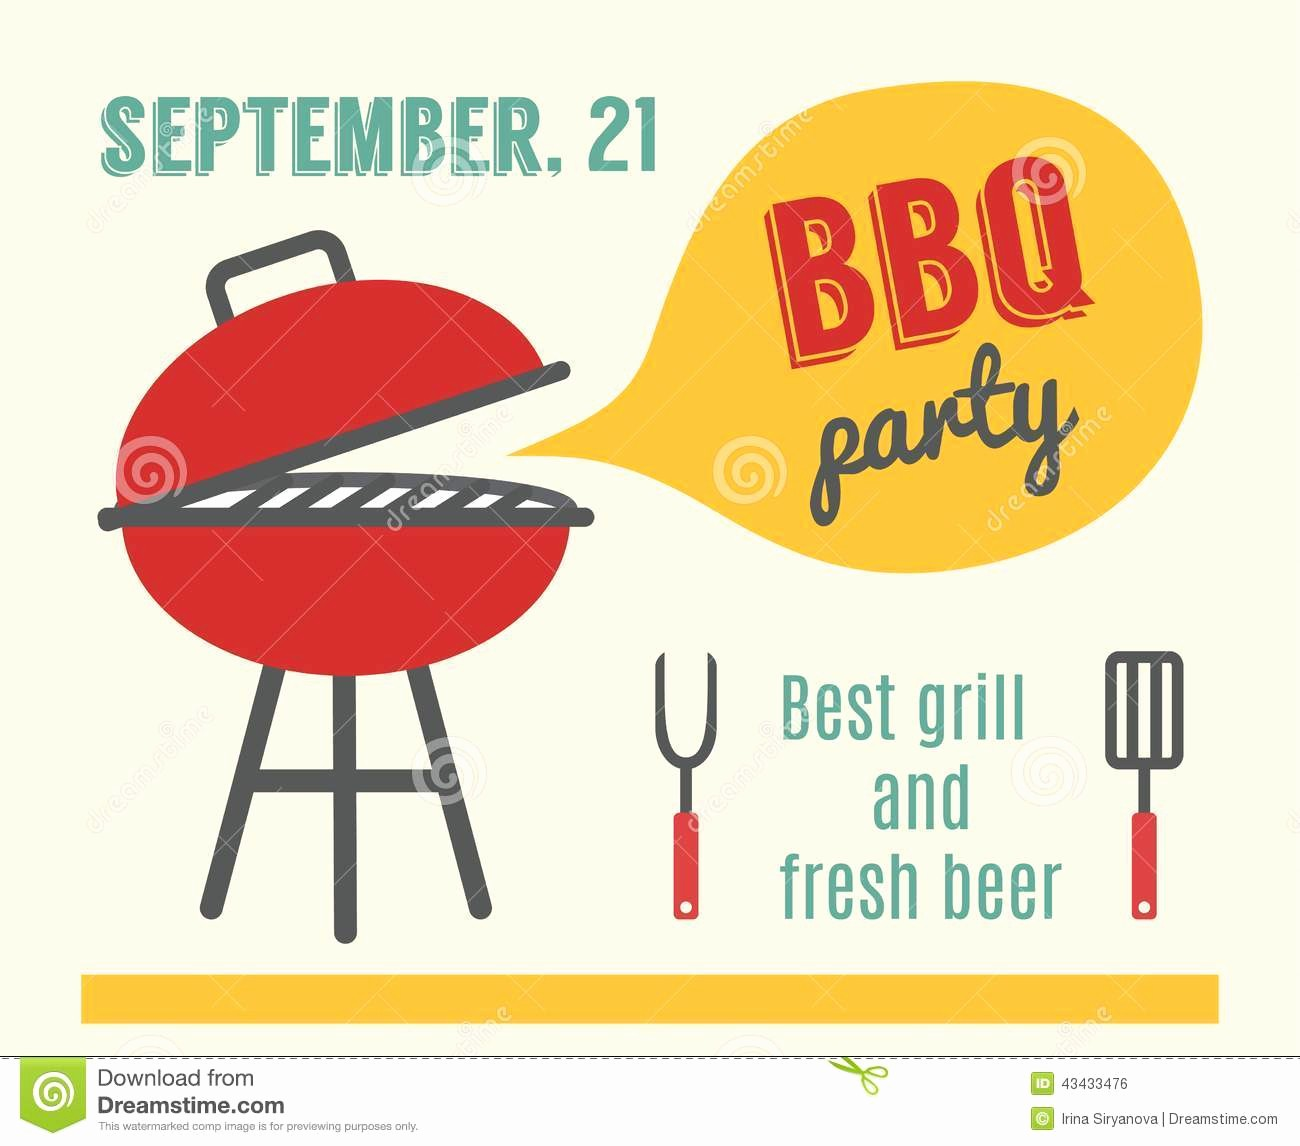 Bbq Party Invitation Templates Free Luxury Bbq Invitation Templates Free Download Jin's Invitations